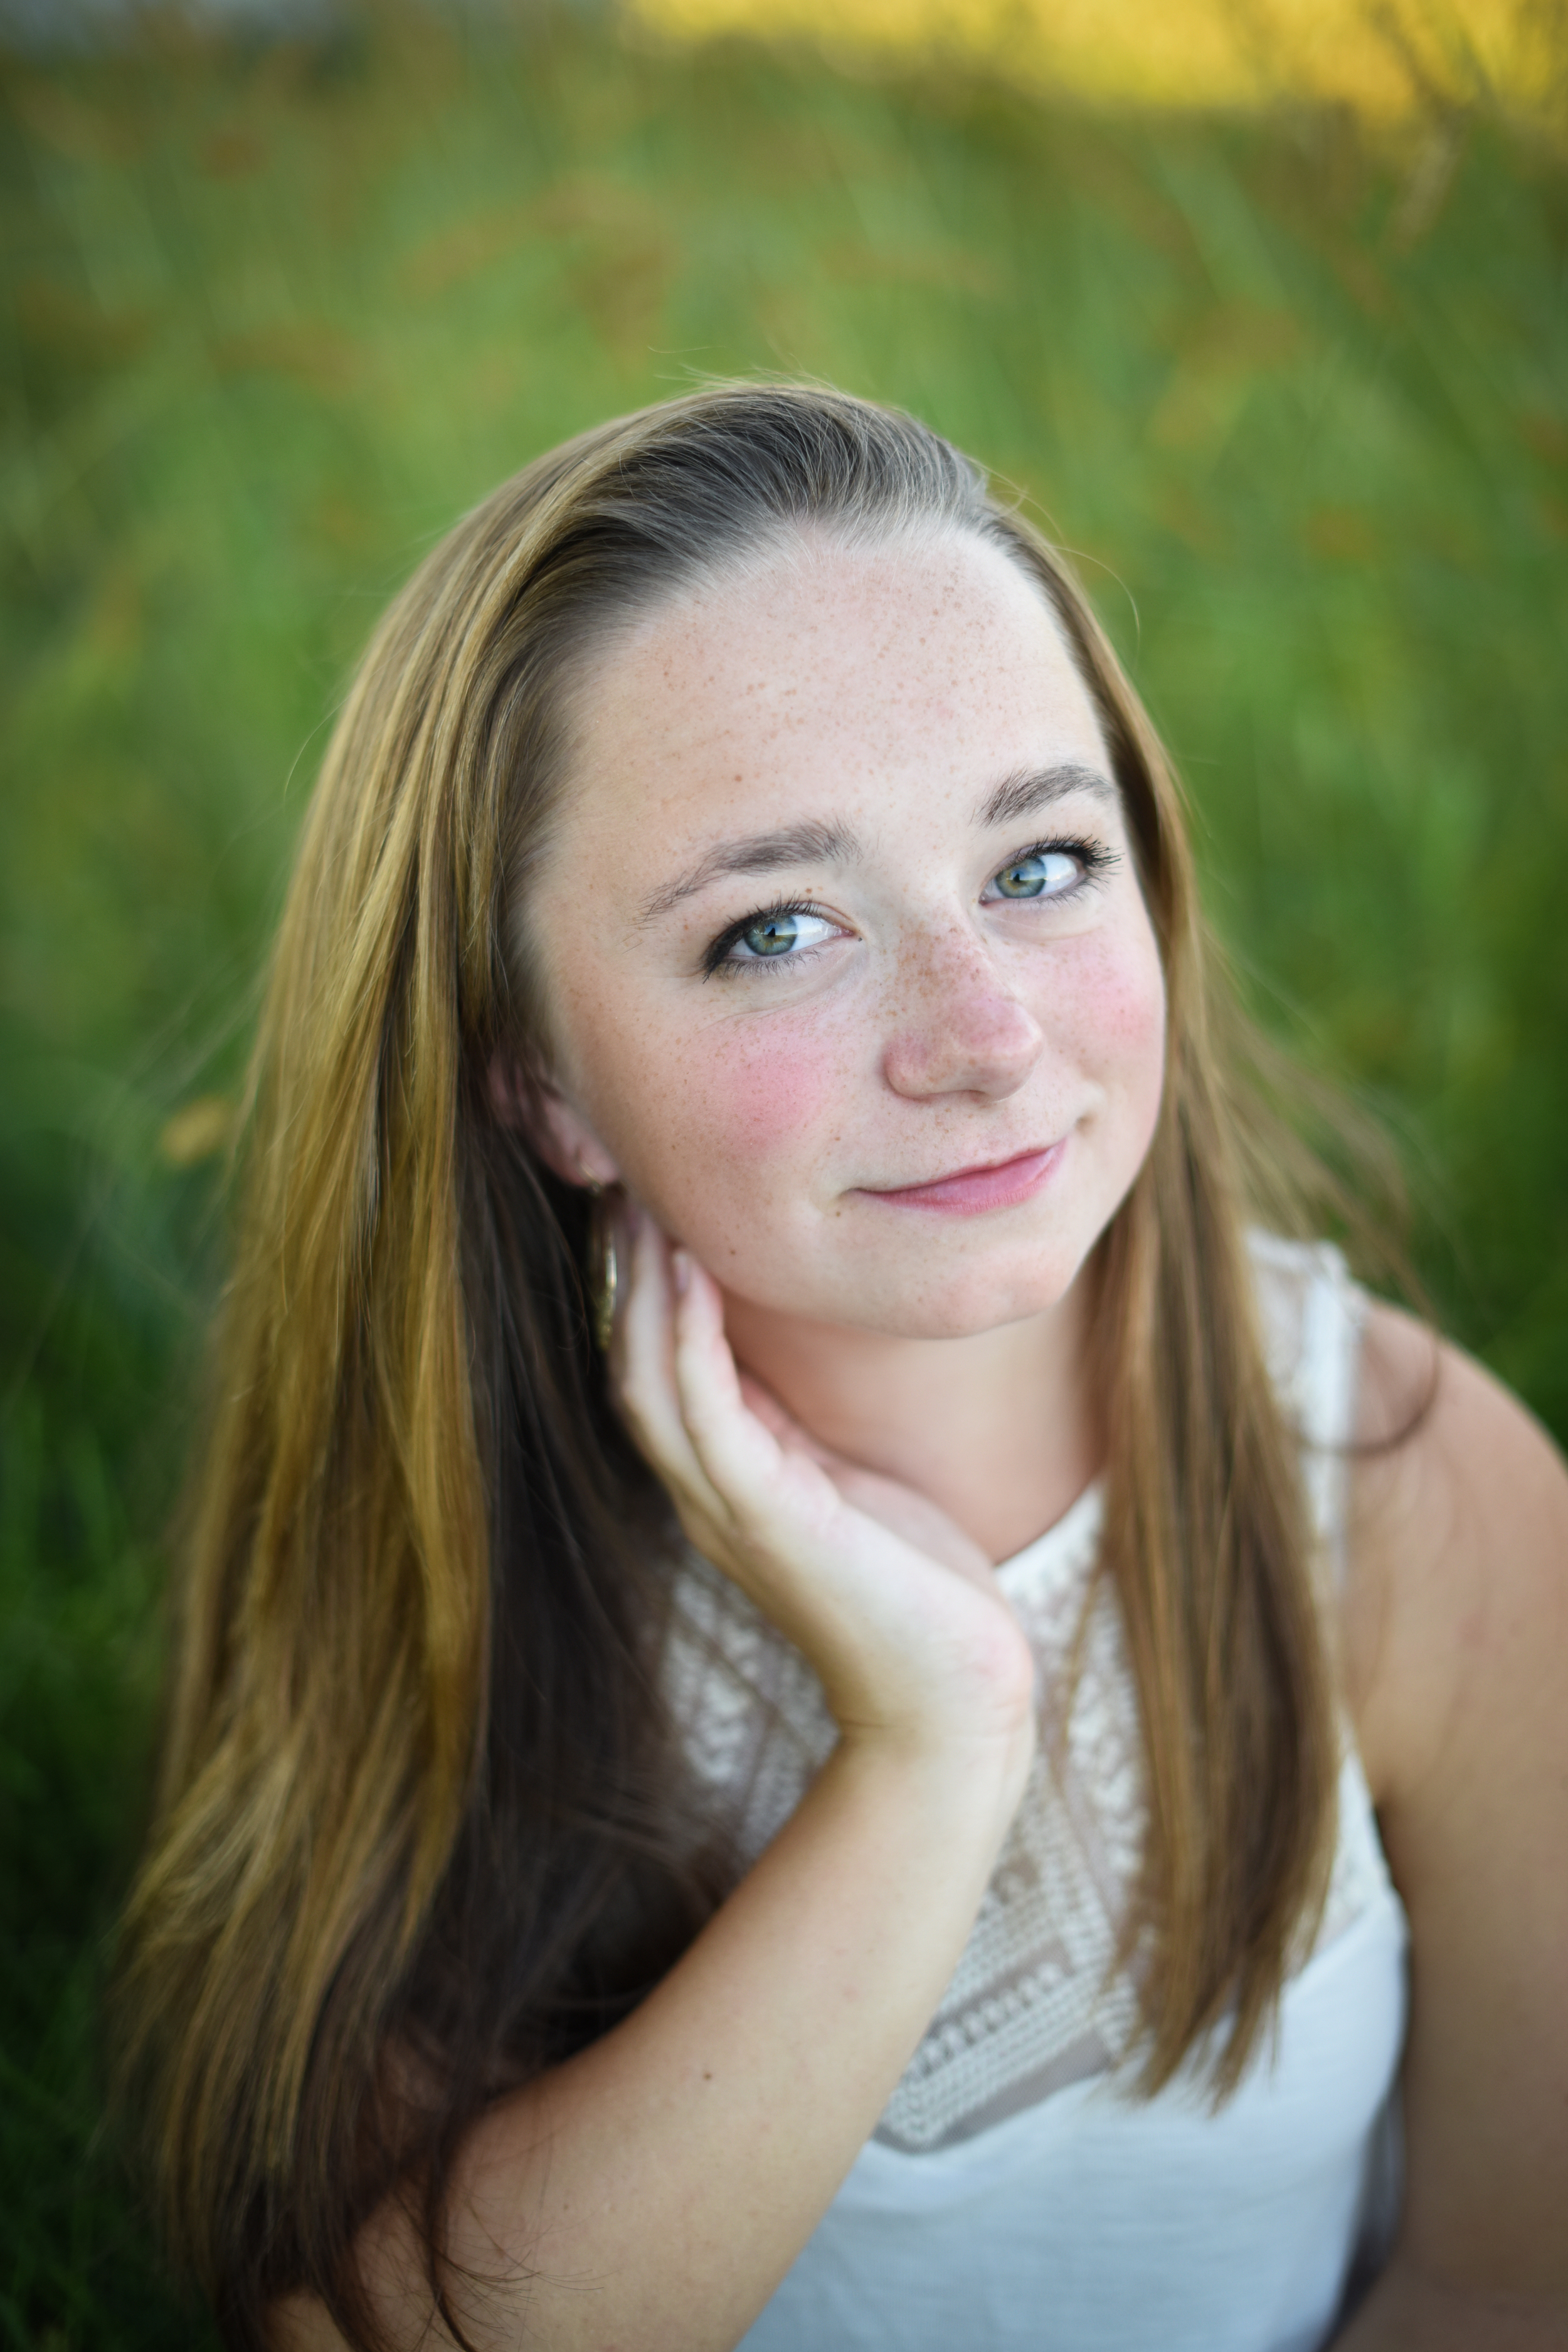 Senior Portrait Photographer in Amherst MA